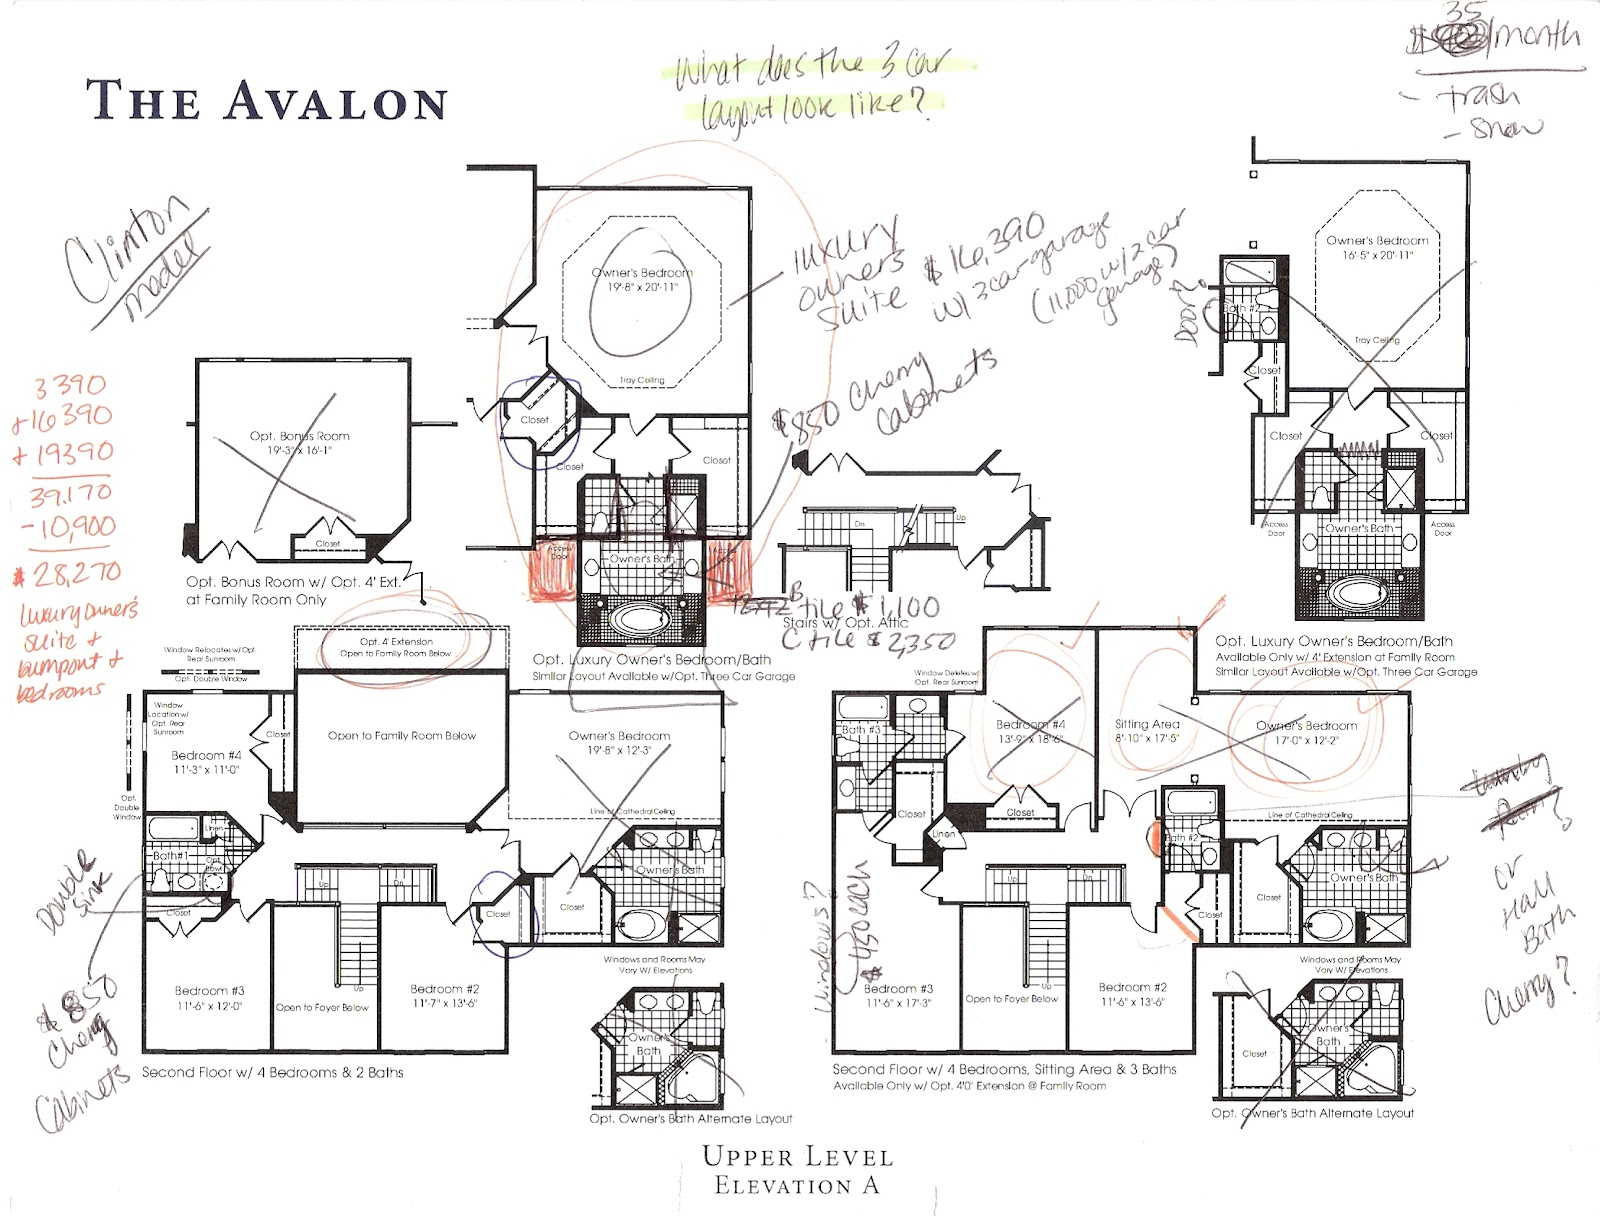 Ryan homes zachary place floor plan House design plans